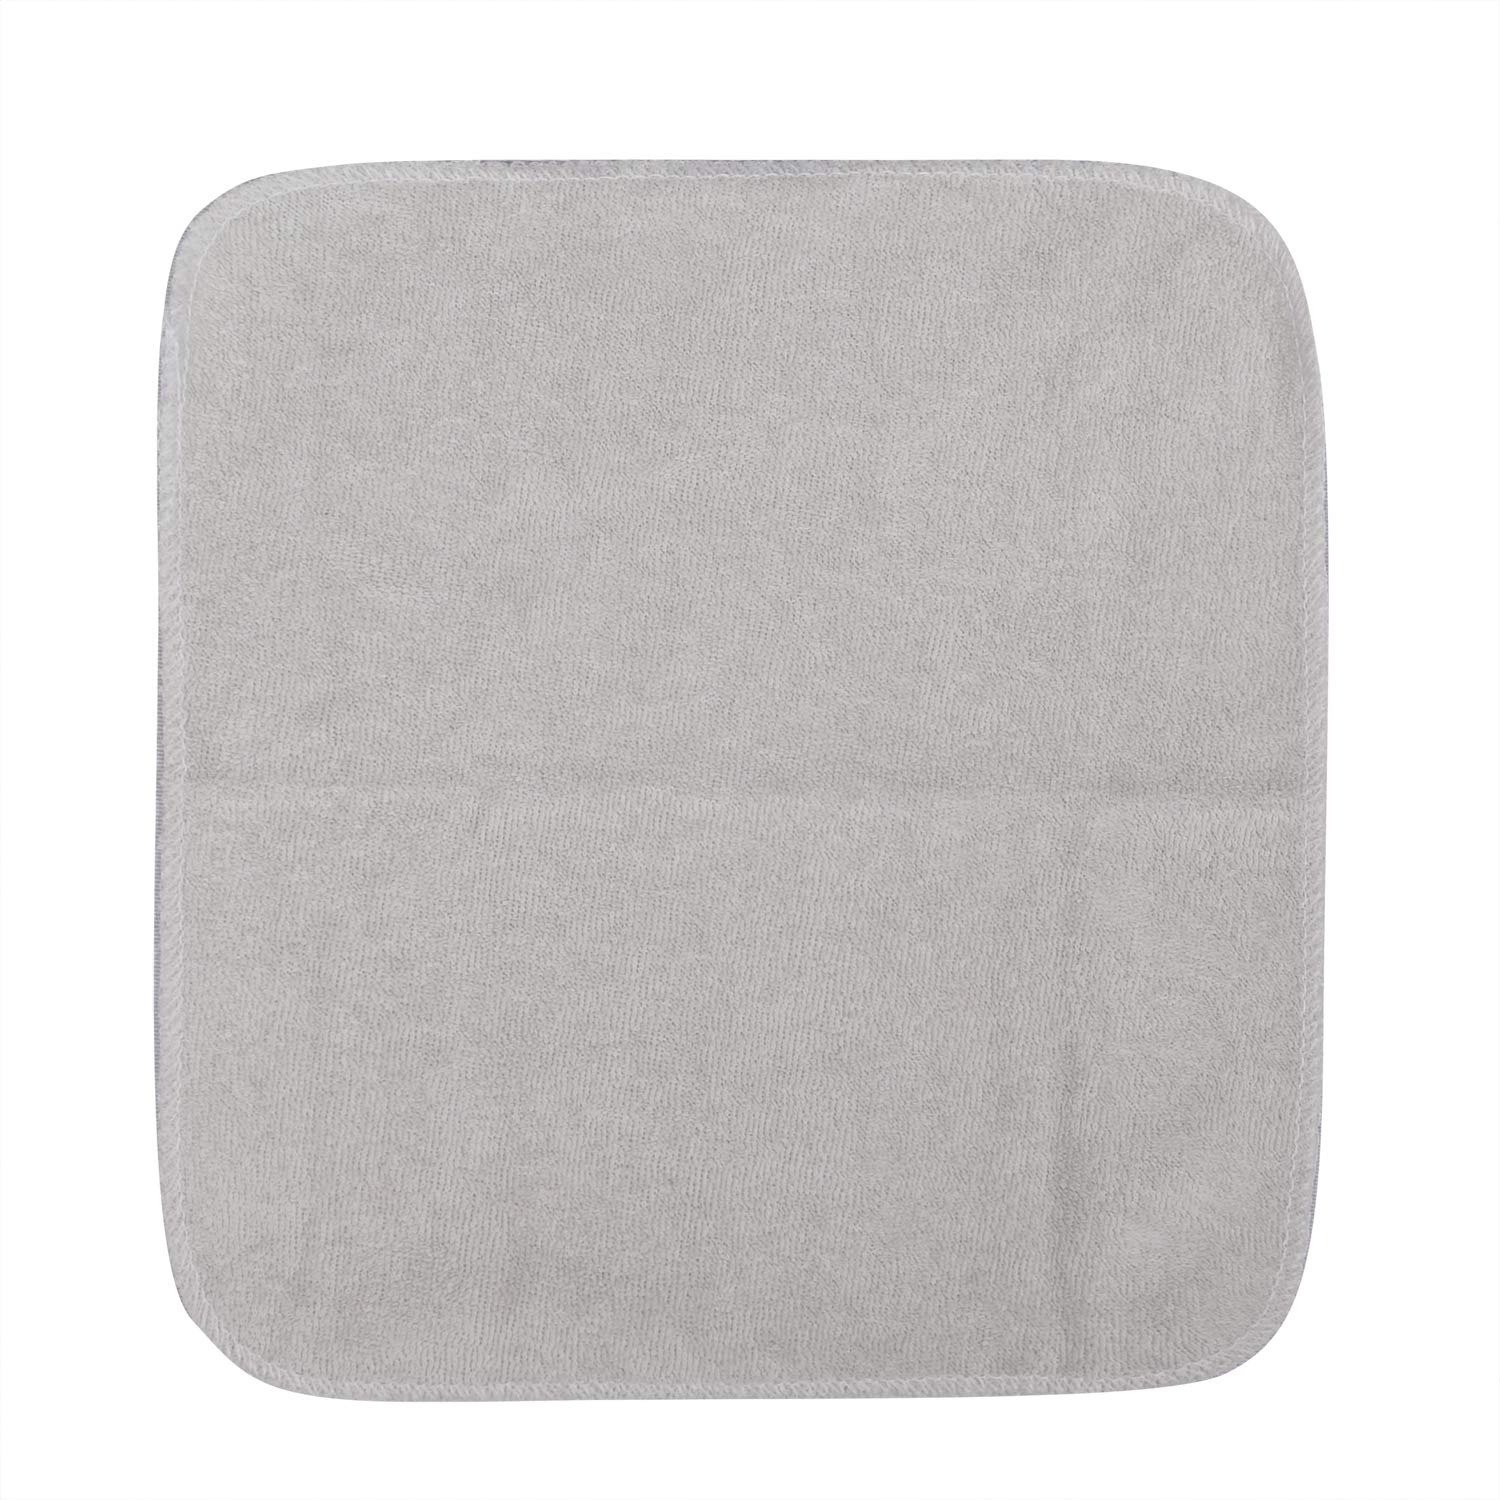 Viviland Cotton Baby Washcloths 24pcs Gift Pack Extra Soft and Ultra Absorbent Terry Bath Towel